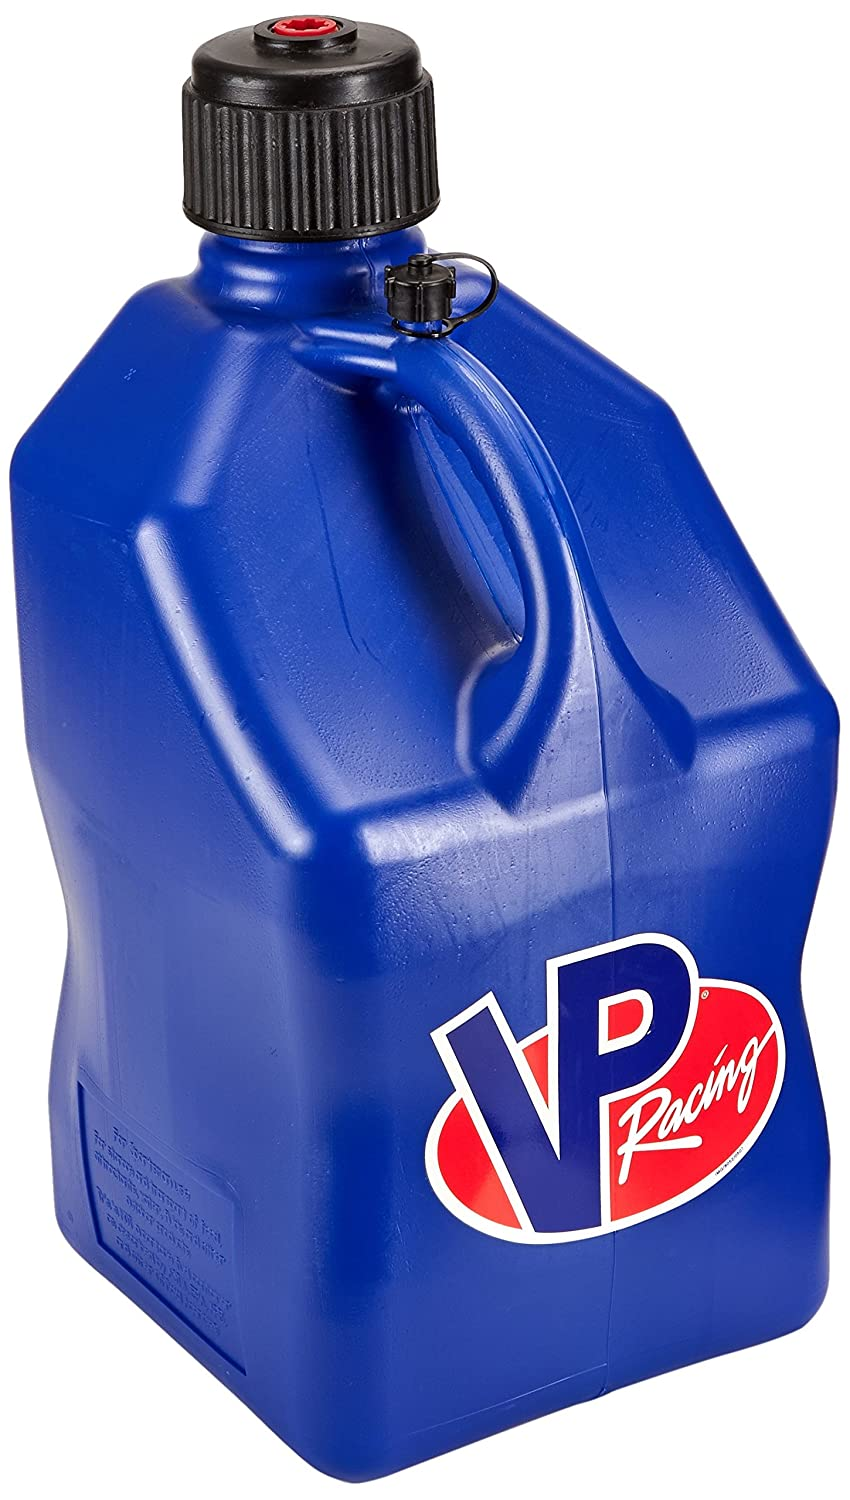 VP Racing Fuel 3532 Blue Fuel Jug